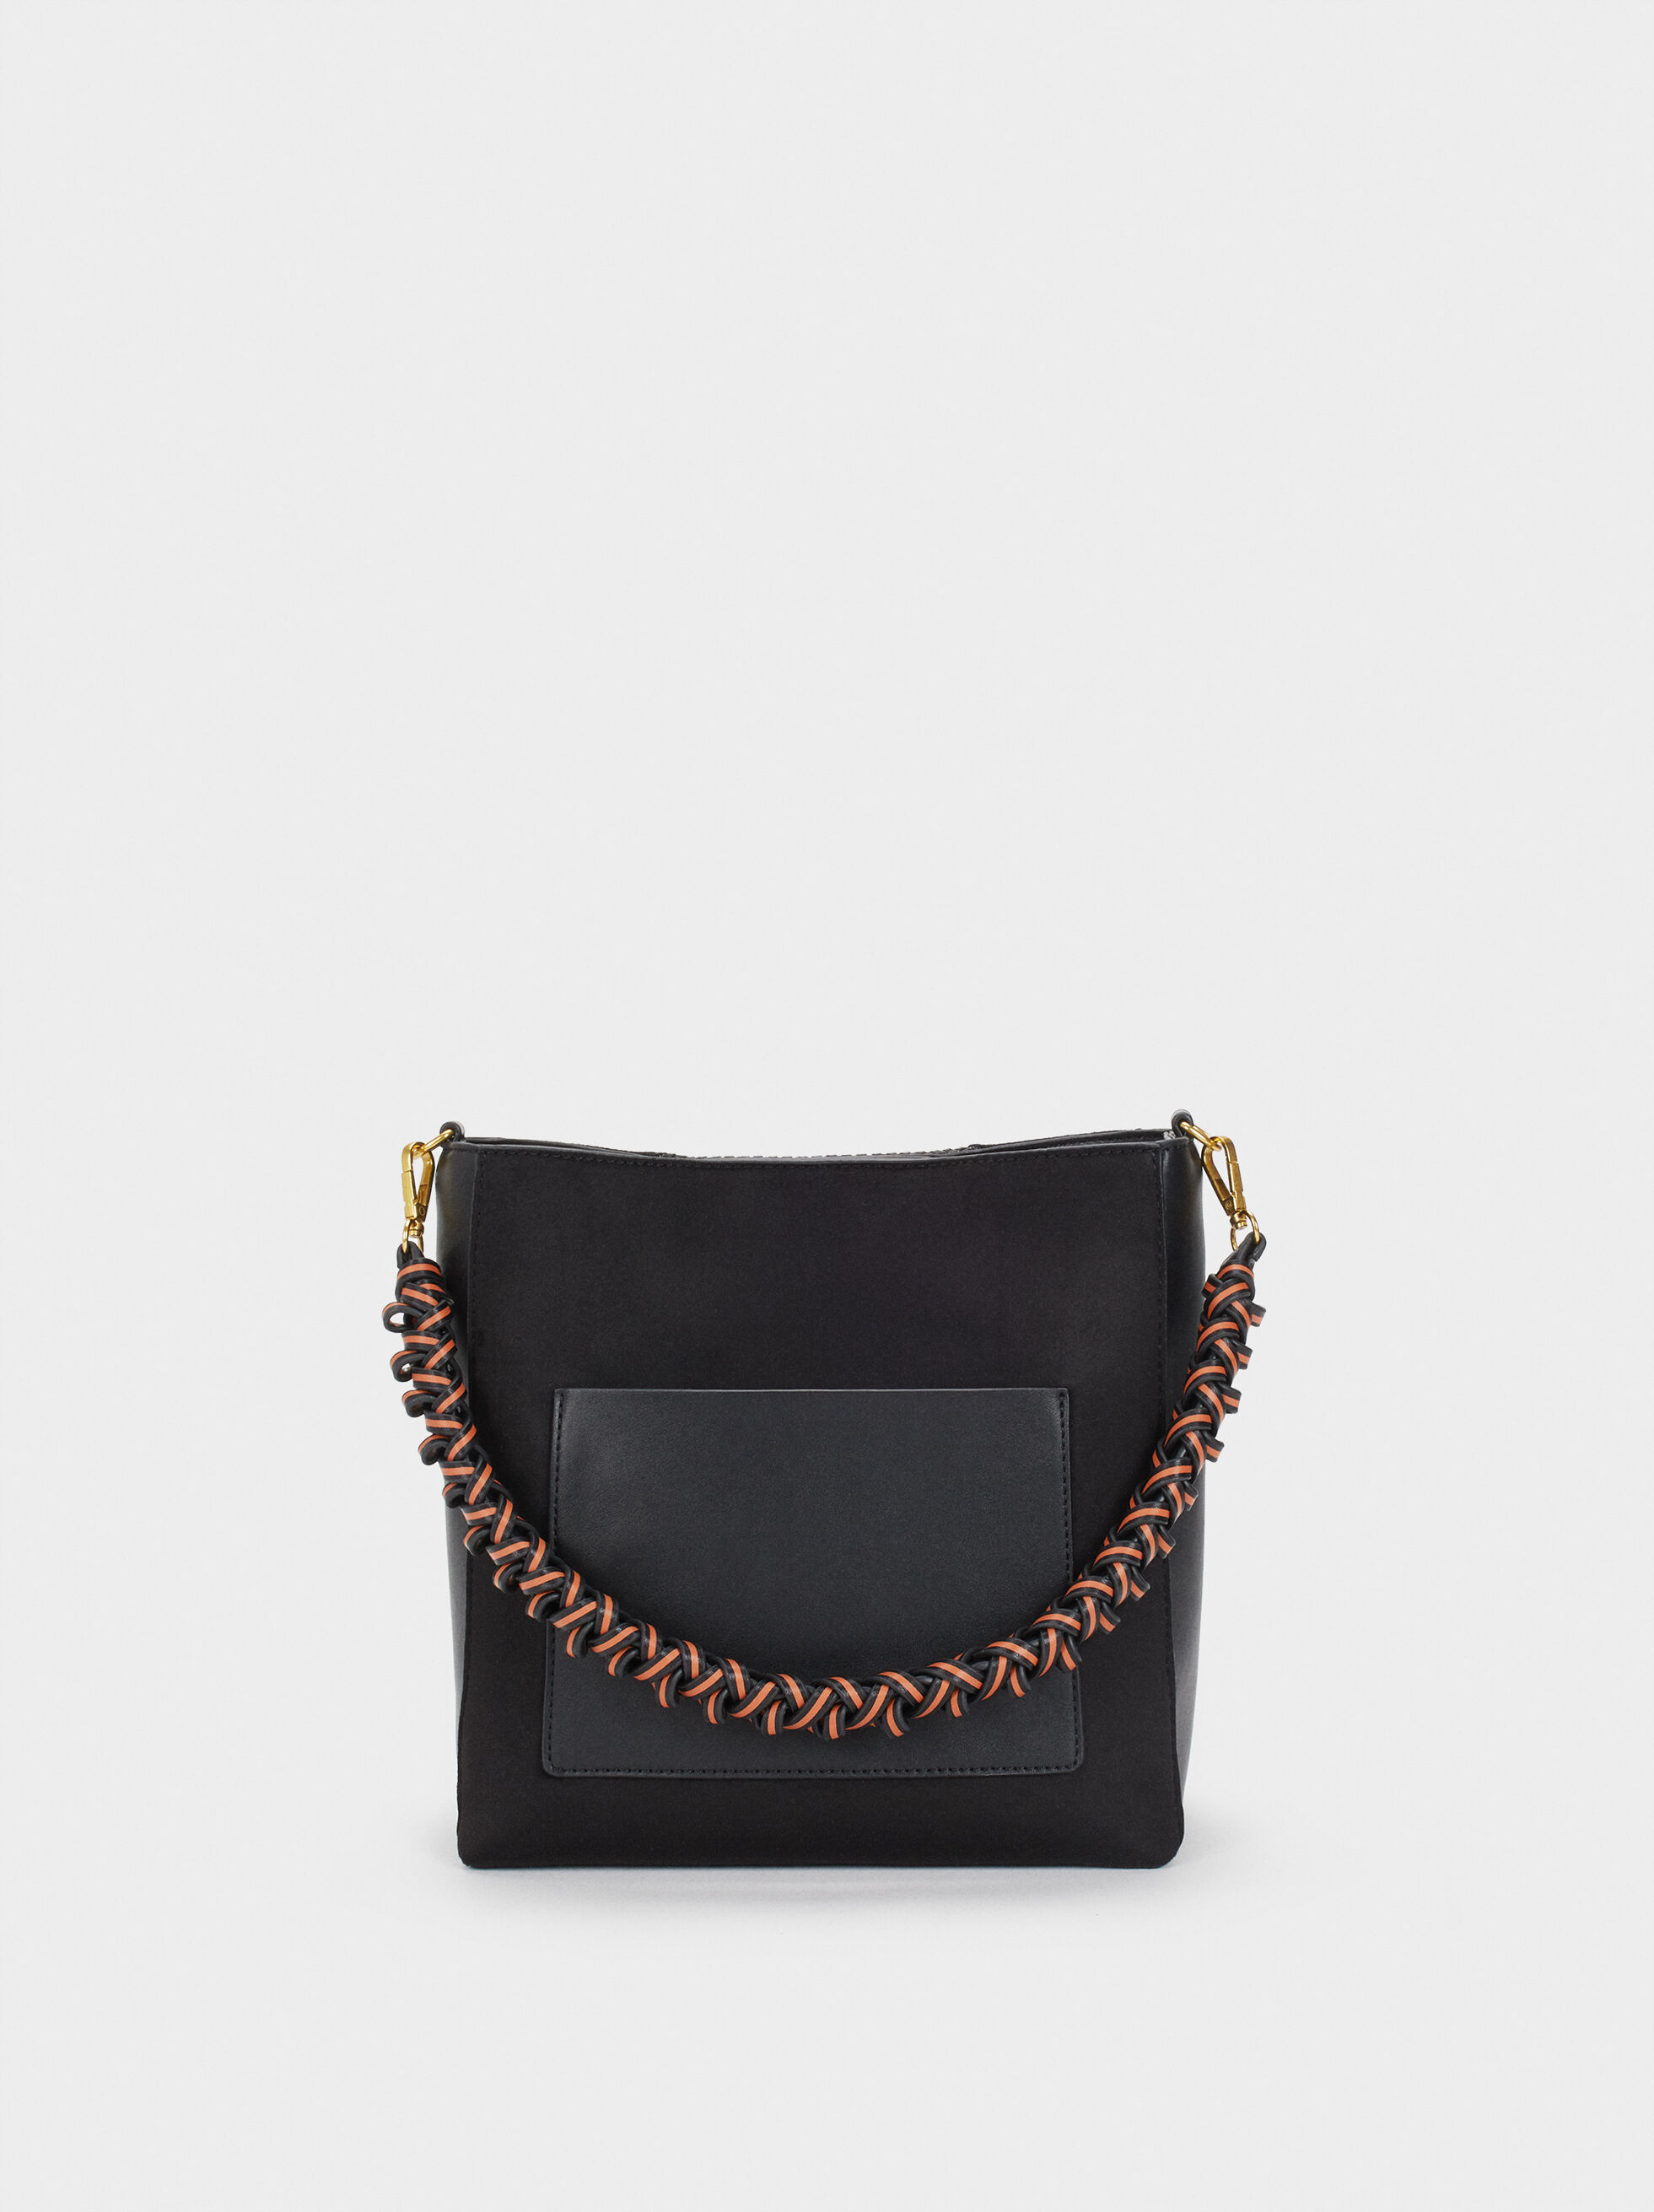 Handbag With Braided Strap, Black, hi-res